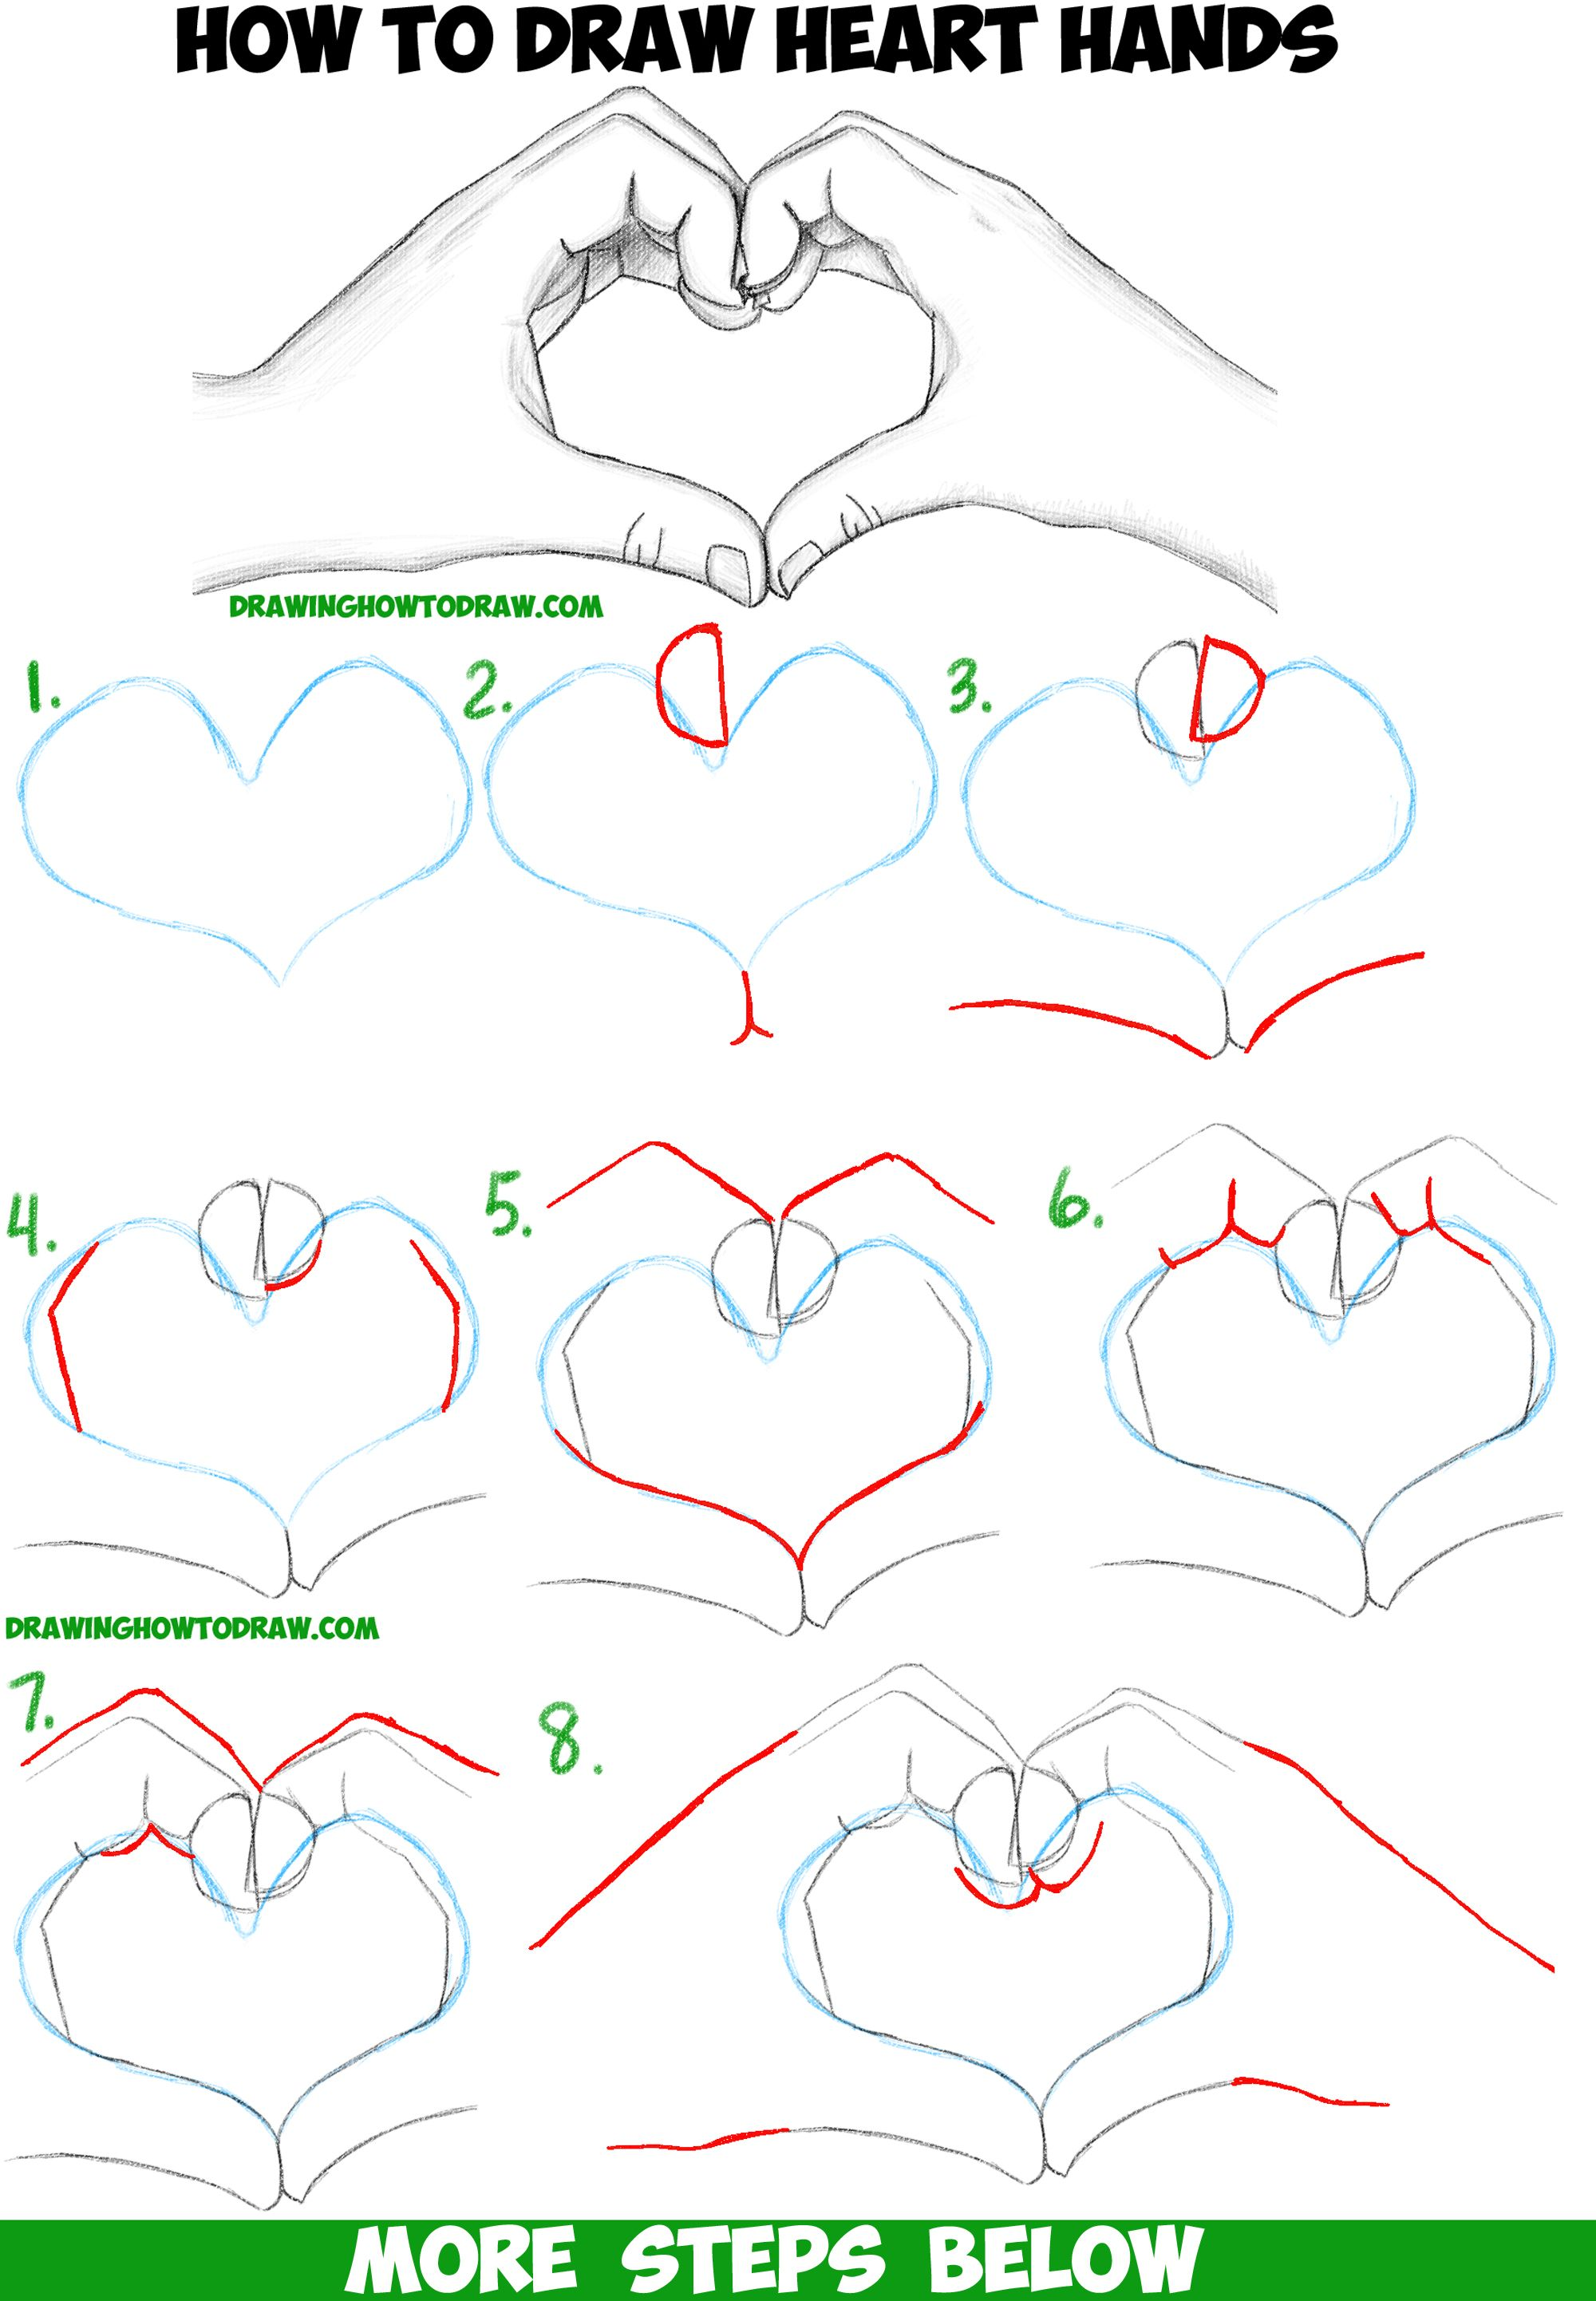 How to draw heart hands in easy to follow step by step drawing how to draw heart hands in easy to follow step by step drawing tutorial for beginners biocorpaavc Choice Image